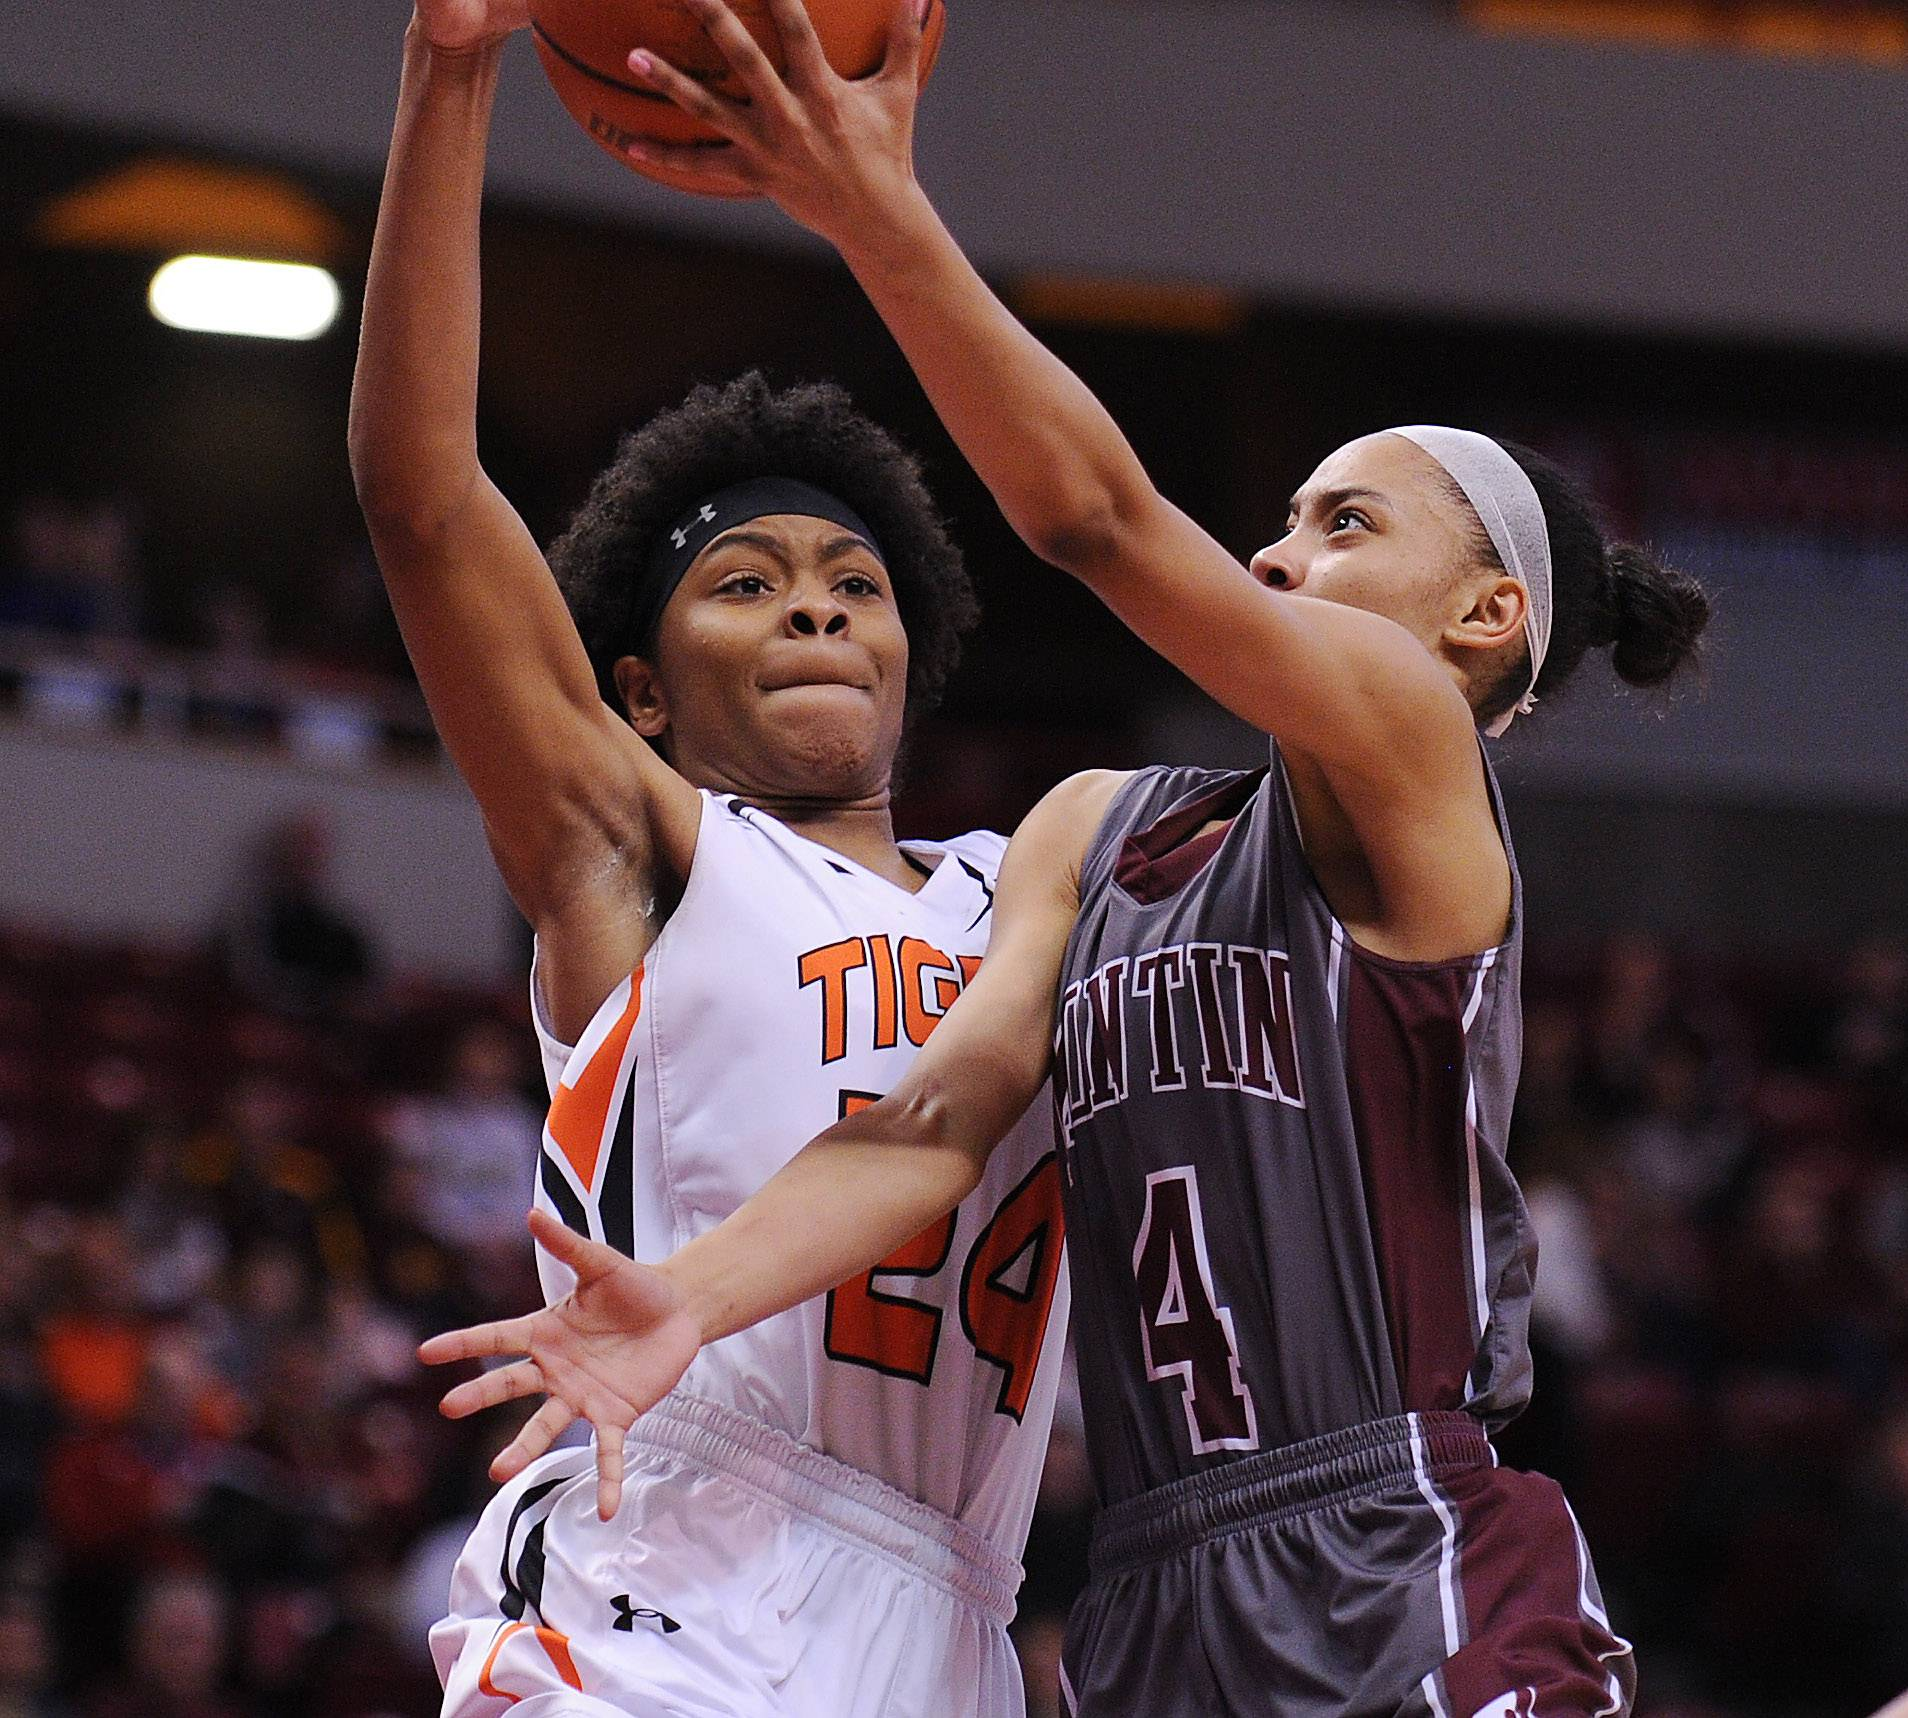 Montini's Ilysse Pitts battles Edwardsville's Myriah Haywood as she moves to the basket in the first half of the girls basketball Class 4A semifinal in Normal, Illinois on Friday.